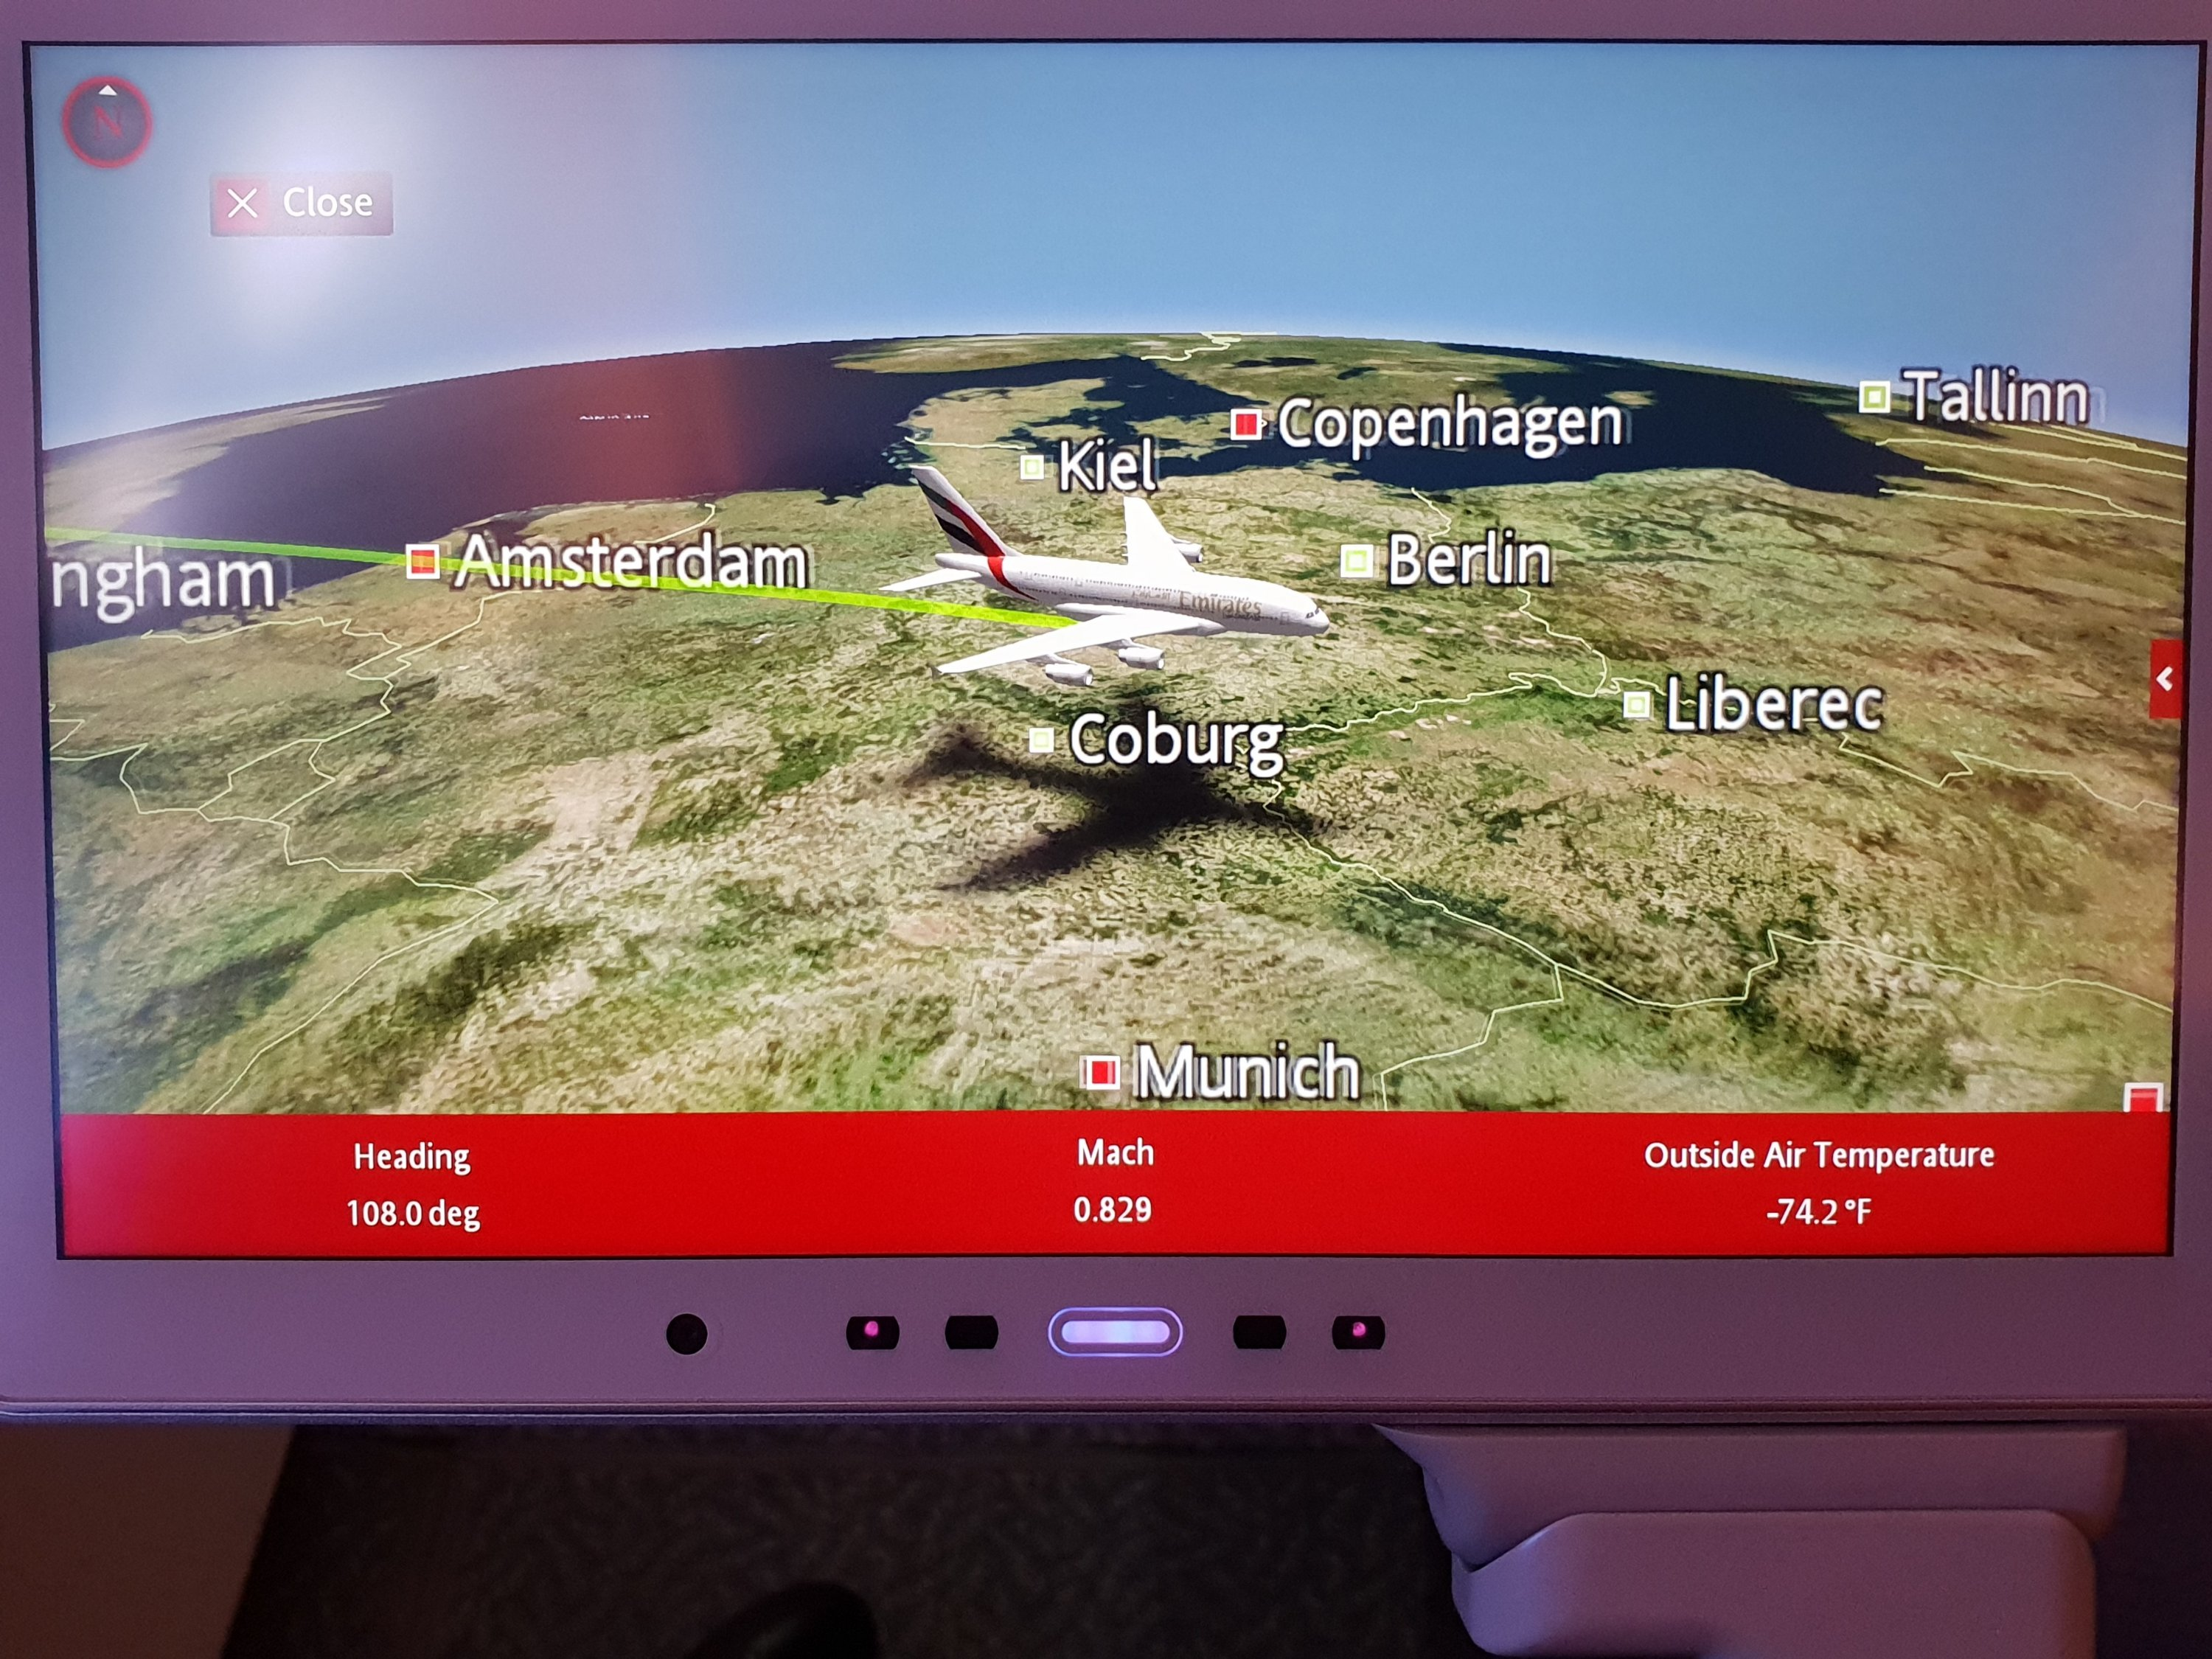 Emirates moving map